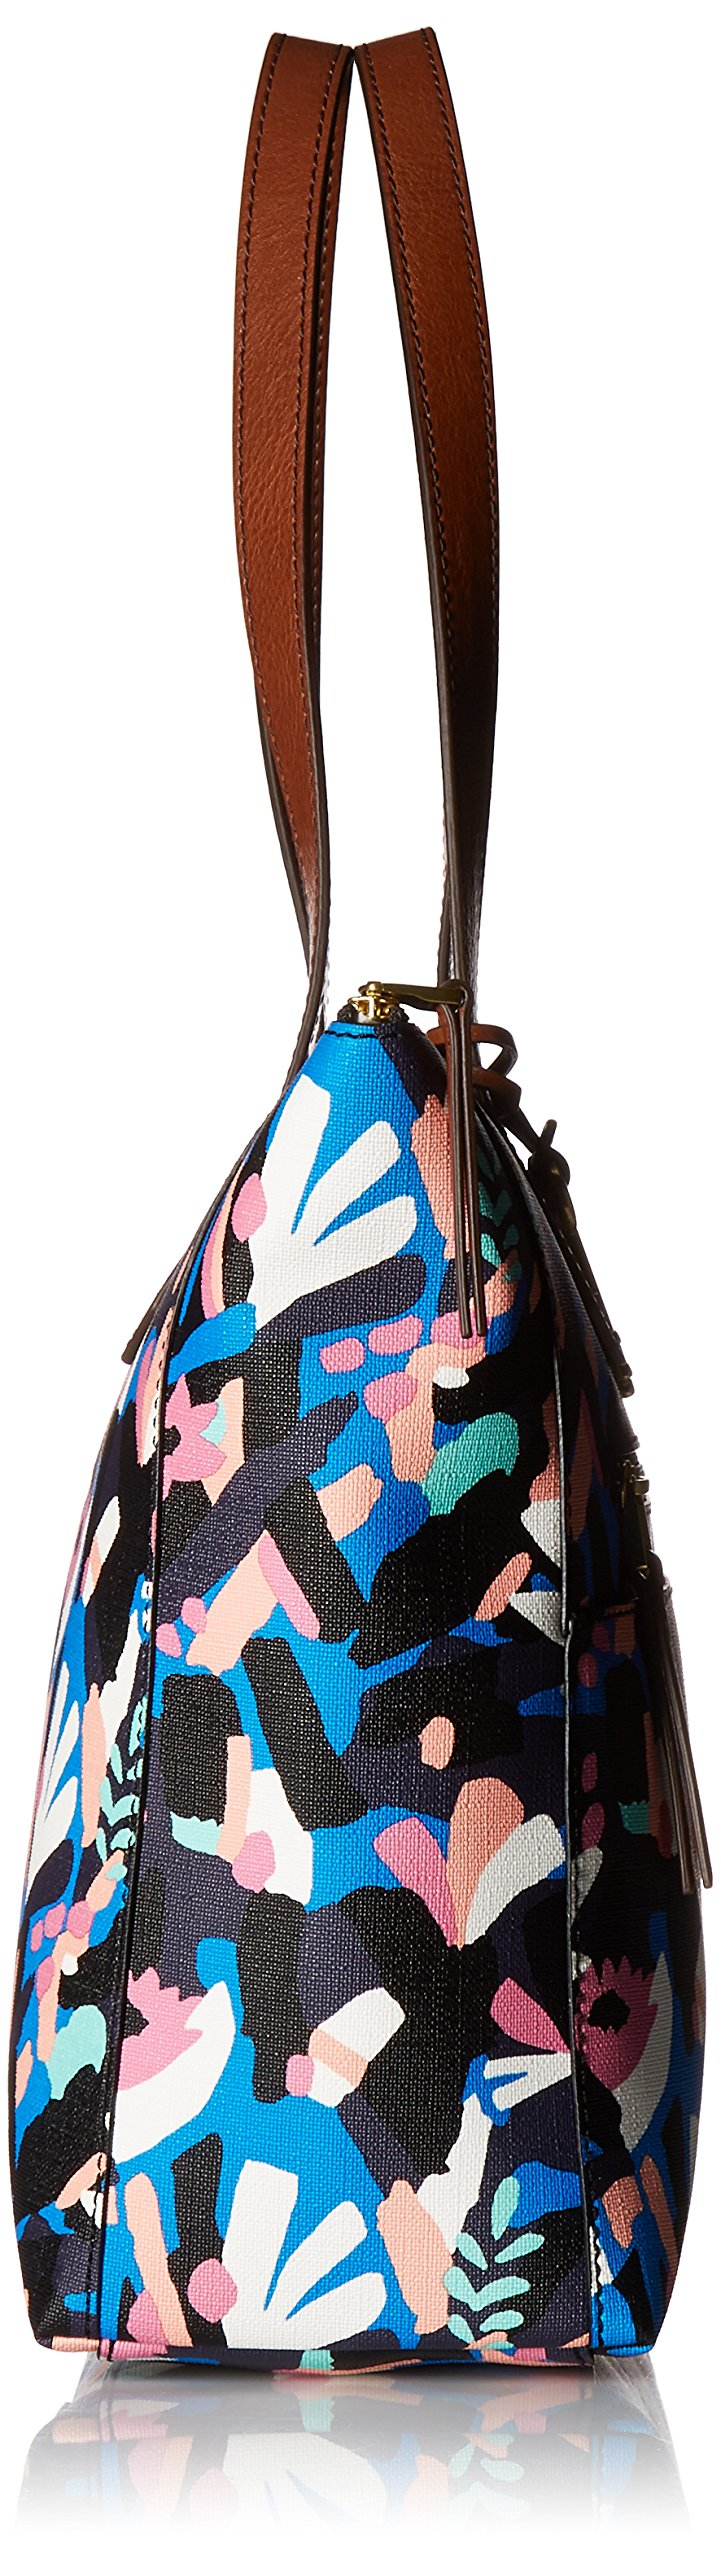 Fossil Fiona E/W Tote Bag, Black Floral,One Size by Fossil (Image #3)